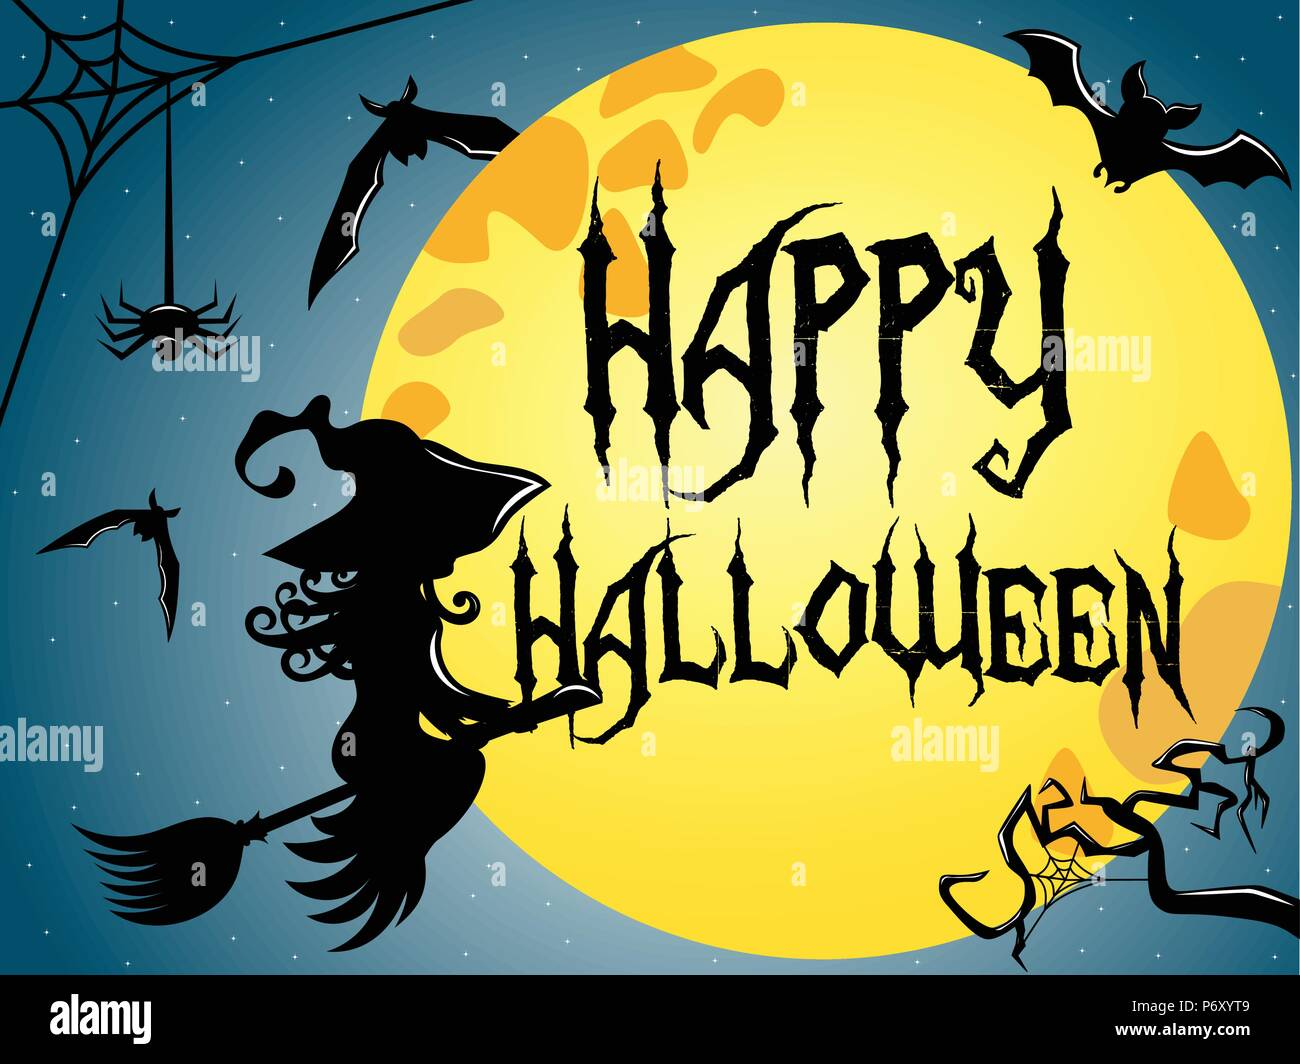 Silhouette Of Young Witch Flying On A Broom Against Full Moon With Happy Halloween Text Superimposed Stock Vector Image Art Alamy